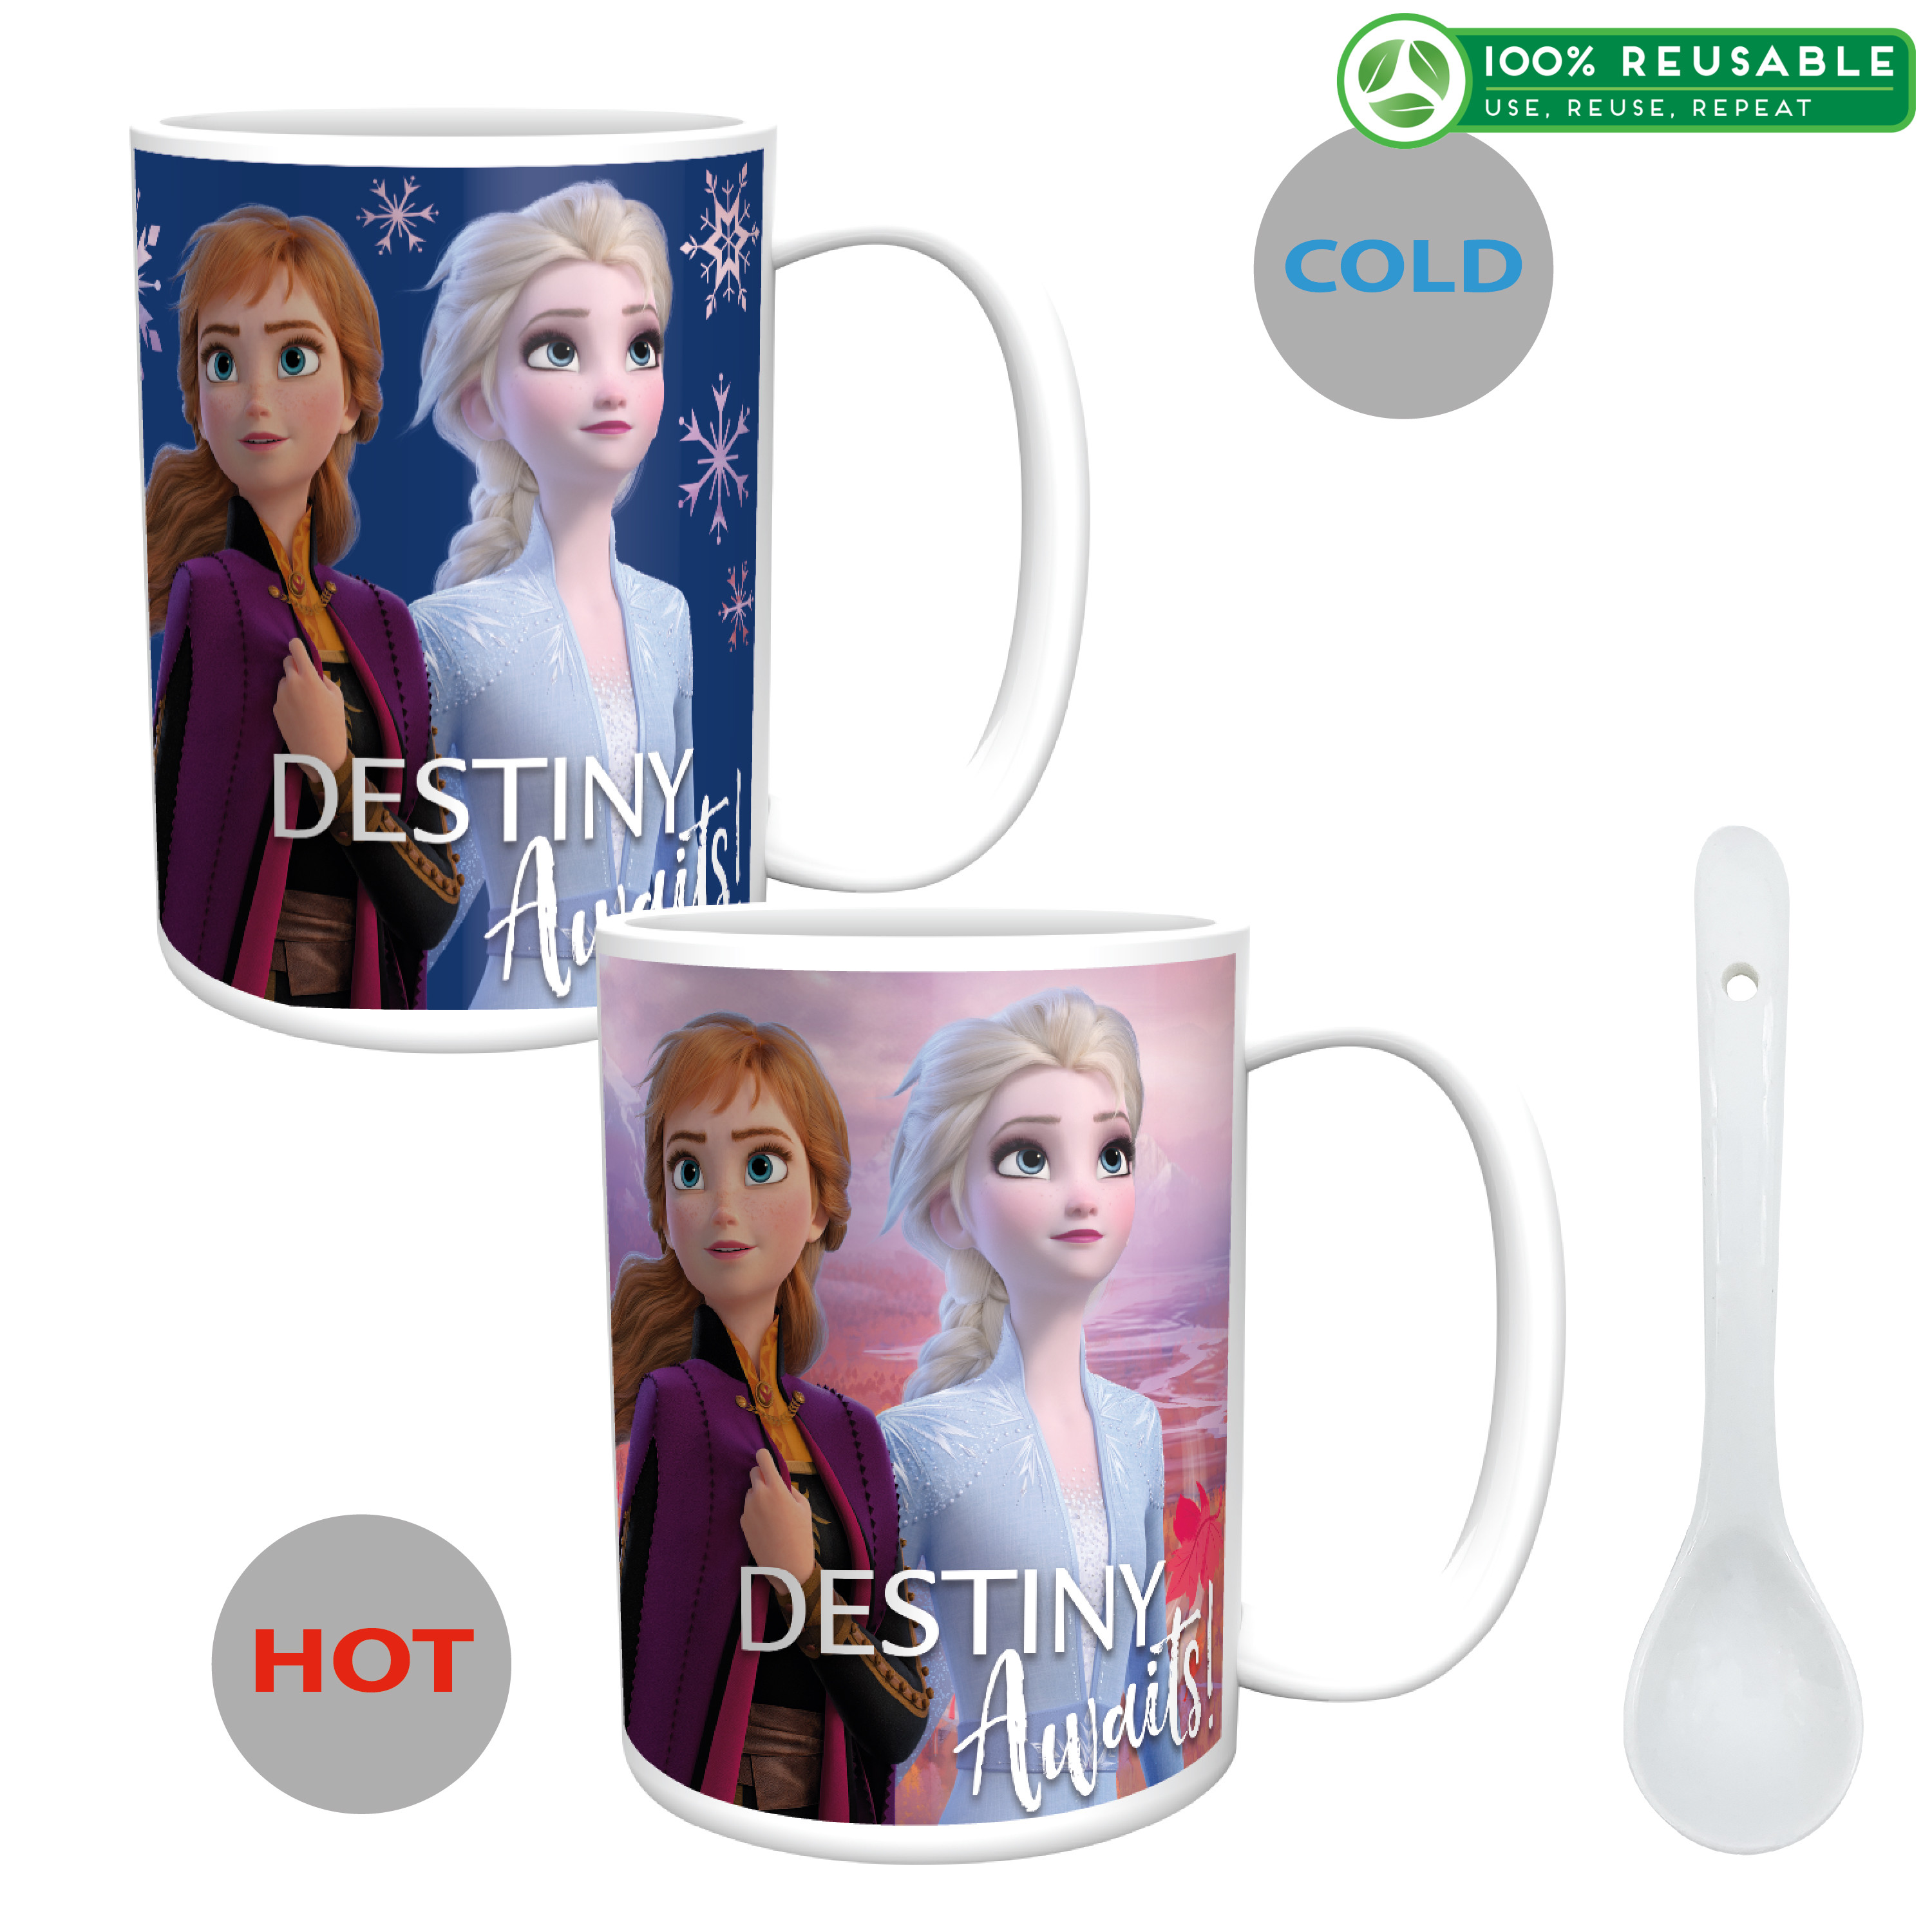 Disney Frozen 2 Movie 15 ounce Coffee Mug and Spoon, Anna, Elsa & Olaf slideshow image 1